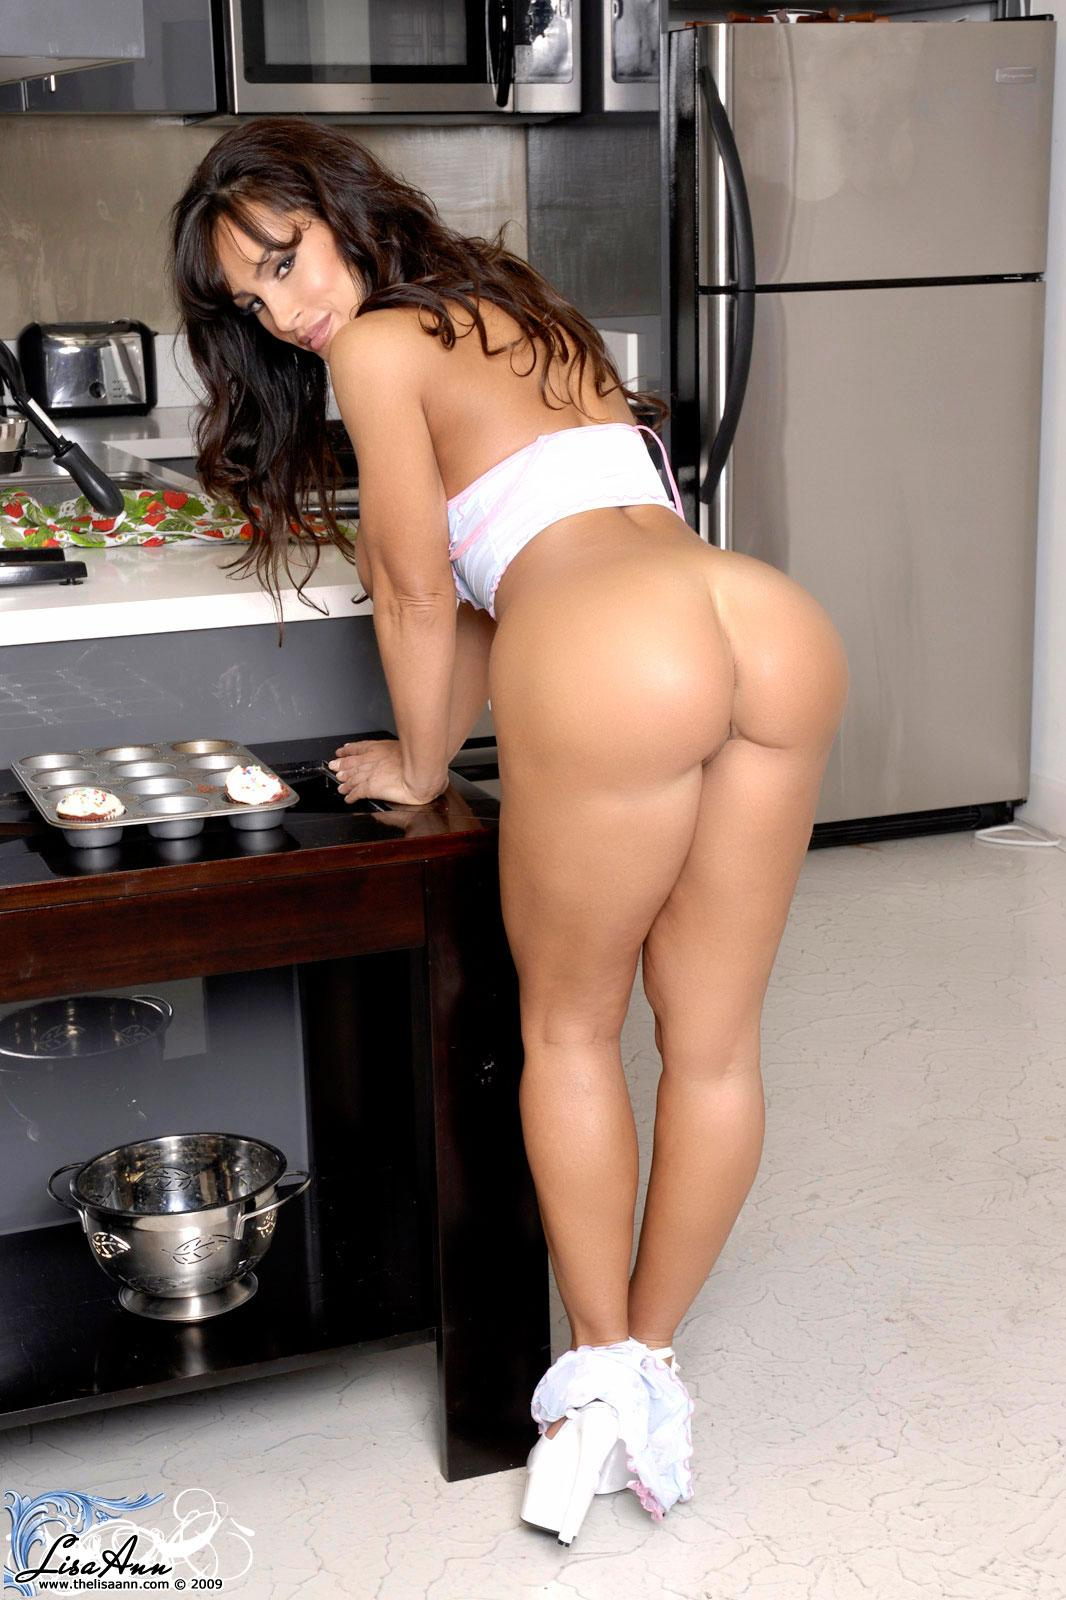 Pictures of Lisa Ann cooking up something sweet in the